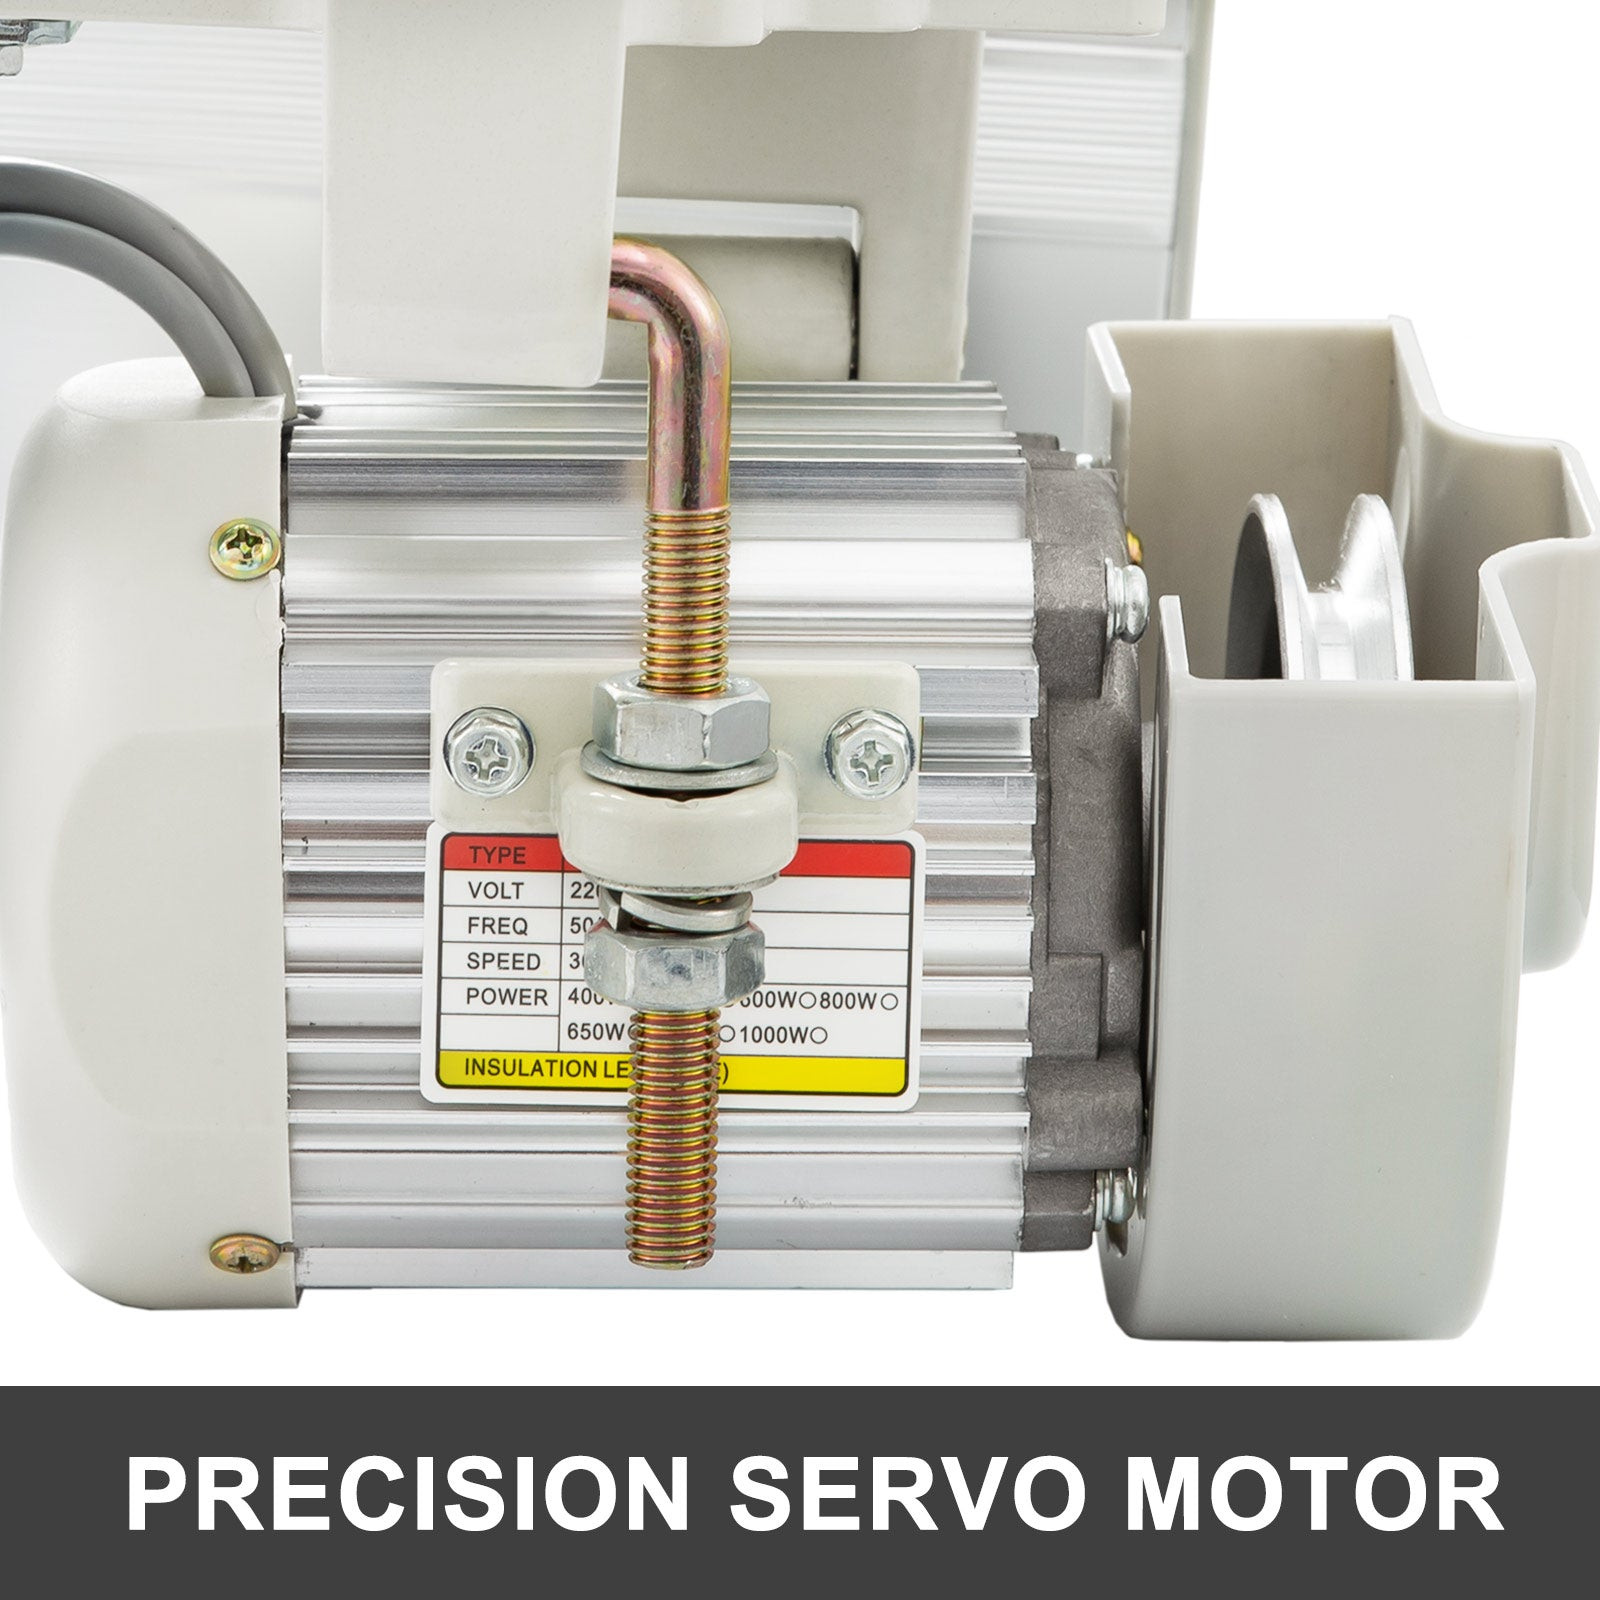 Sewing Servo Motor Servo Motor For Sewing Machine 600w With Needle Positioner